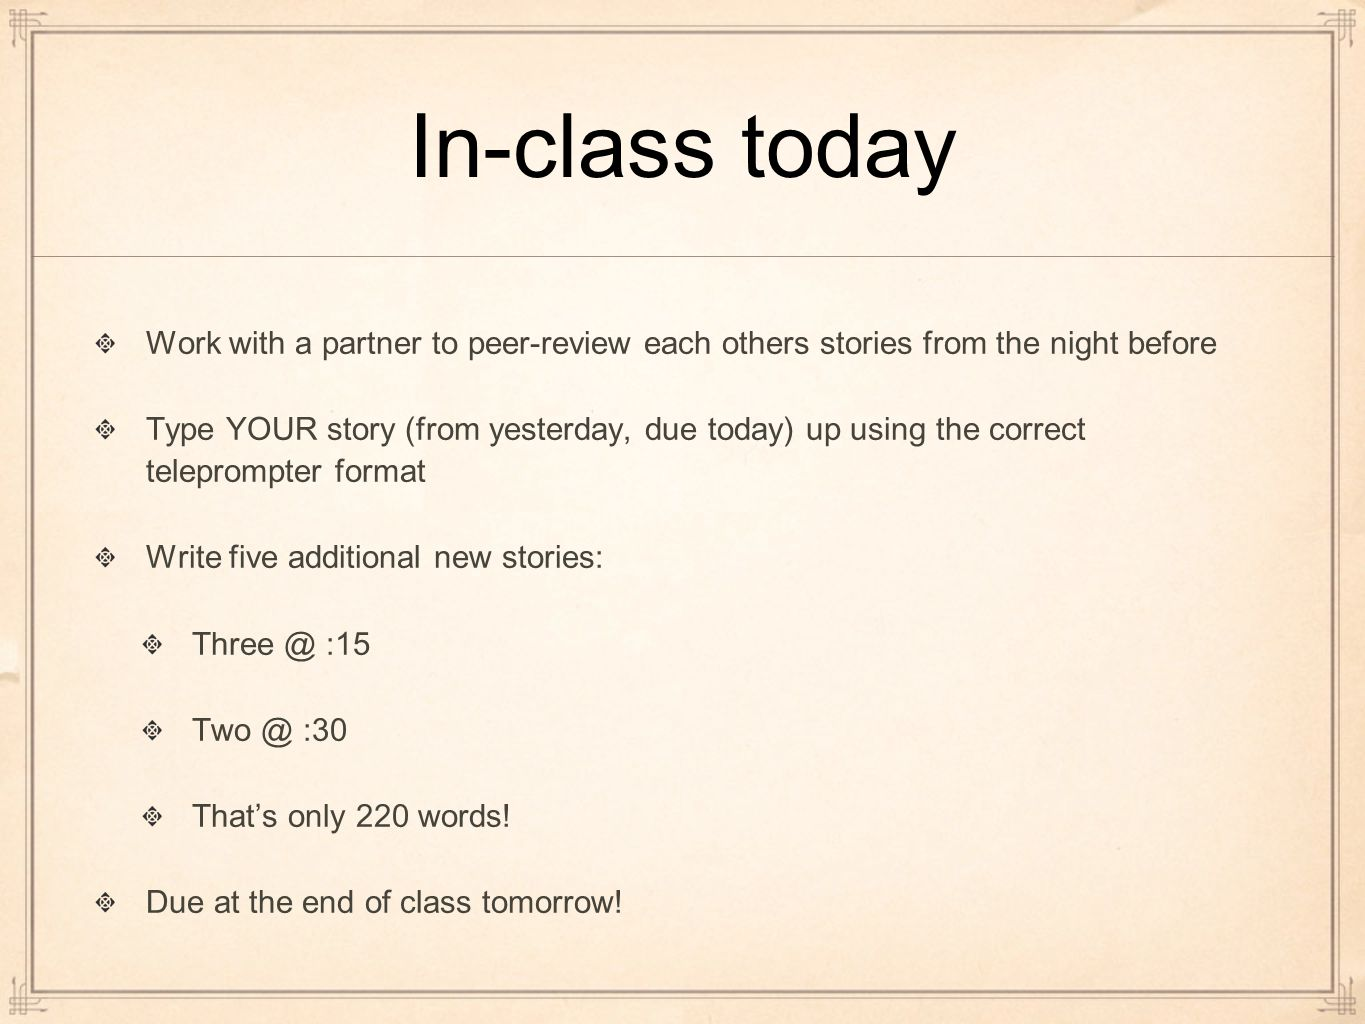 In-class today Work with a partner to peer-review each others stories from the night before Type YOUR story (from yesterday, due today) up using the correct teleprompter format Write five additional new stories: Three @ :15 Two @ :30 That's only 220 words.